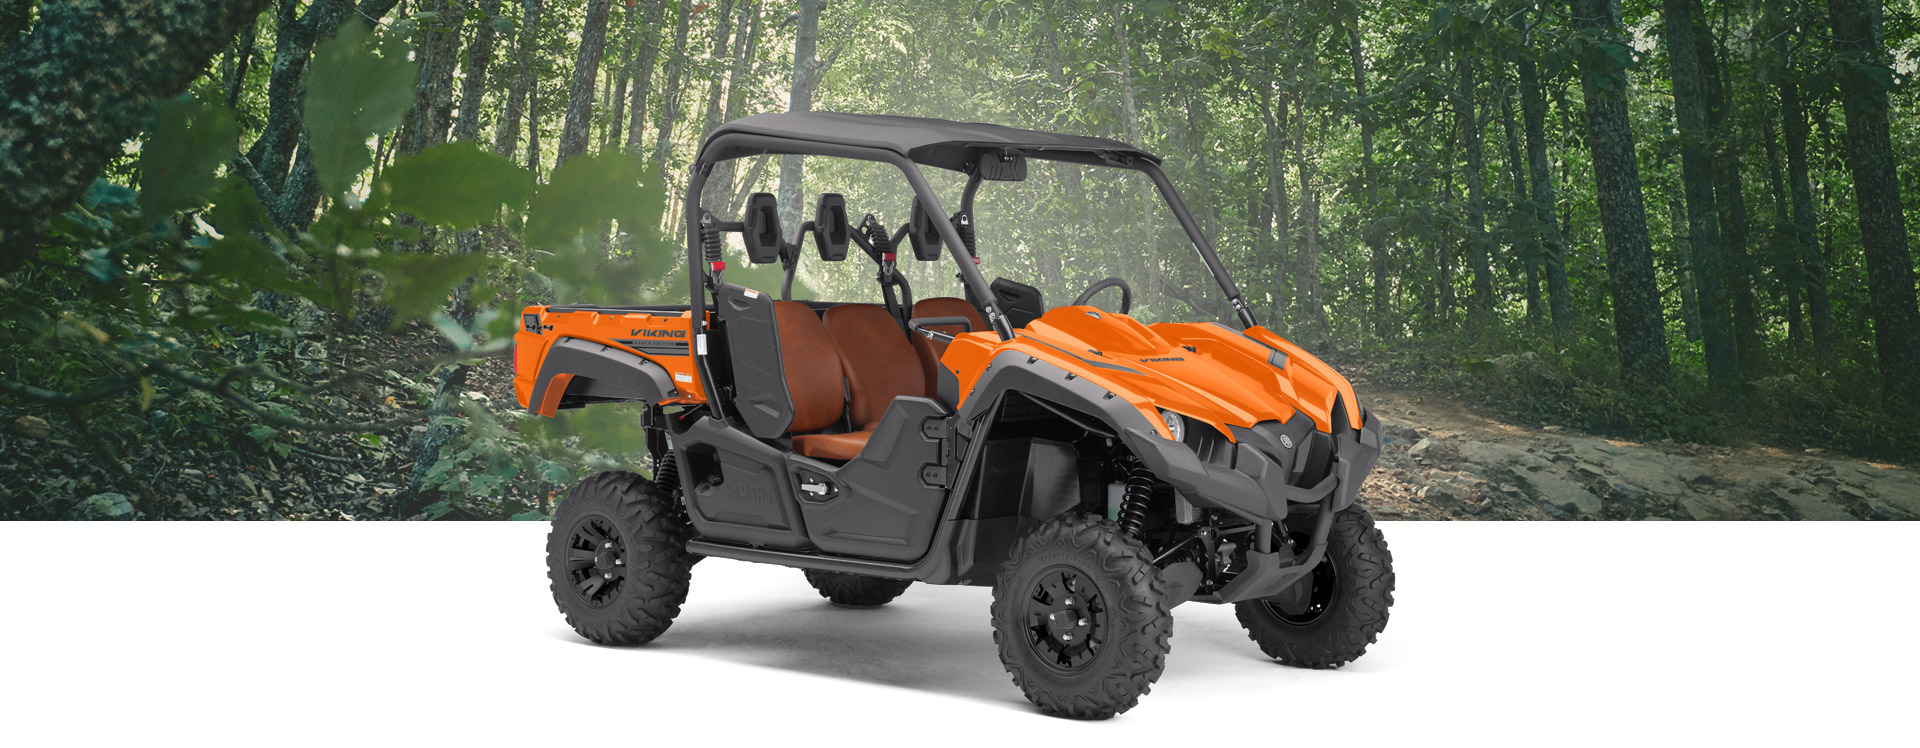 2020 Yamaha Viking Eps Ranch Edition Utility Side By Side Model Home